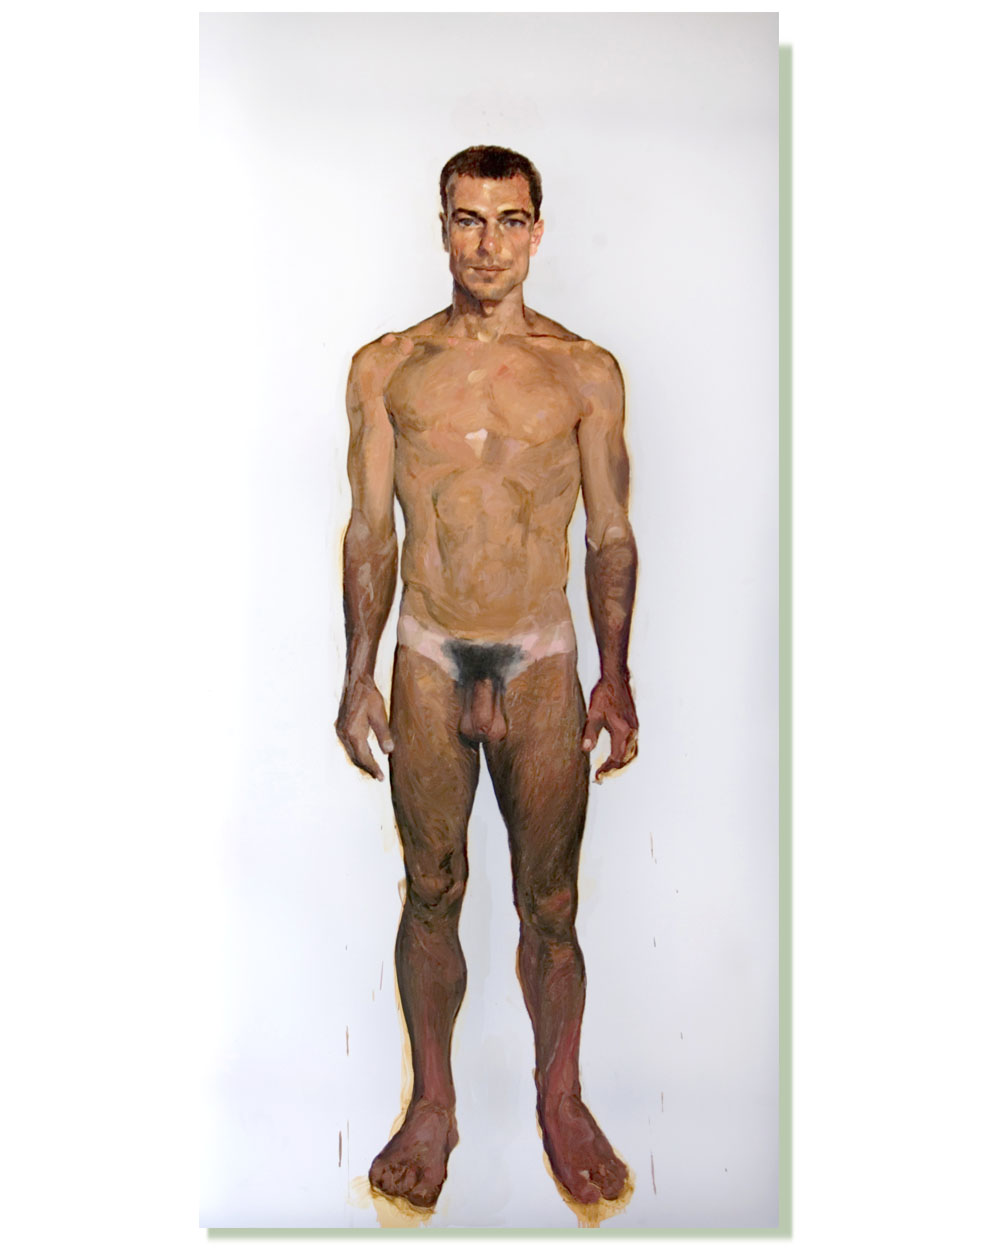 Jose, 2016 by Jorge Bayo at Gay Art Madrid